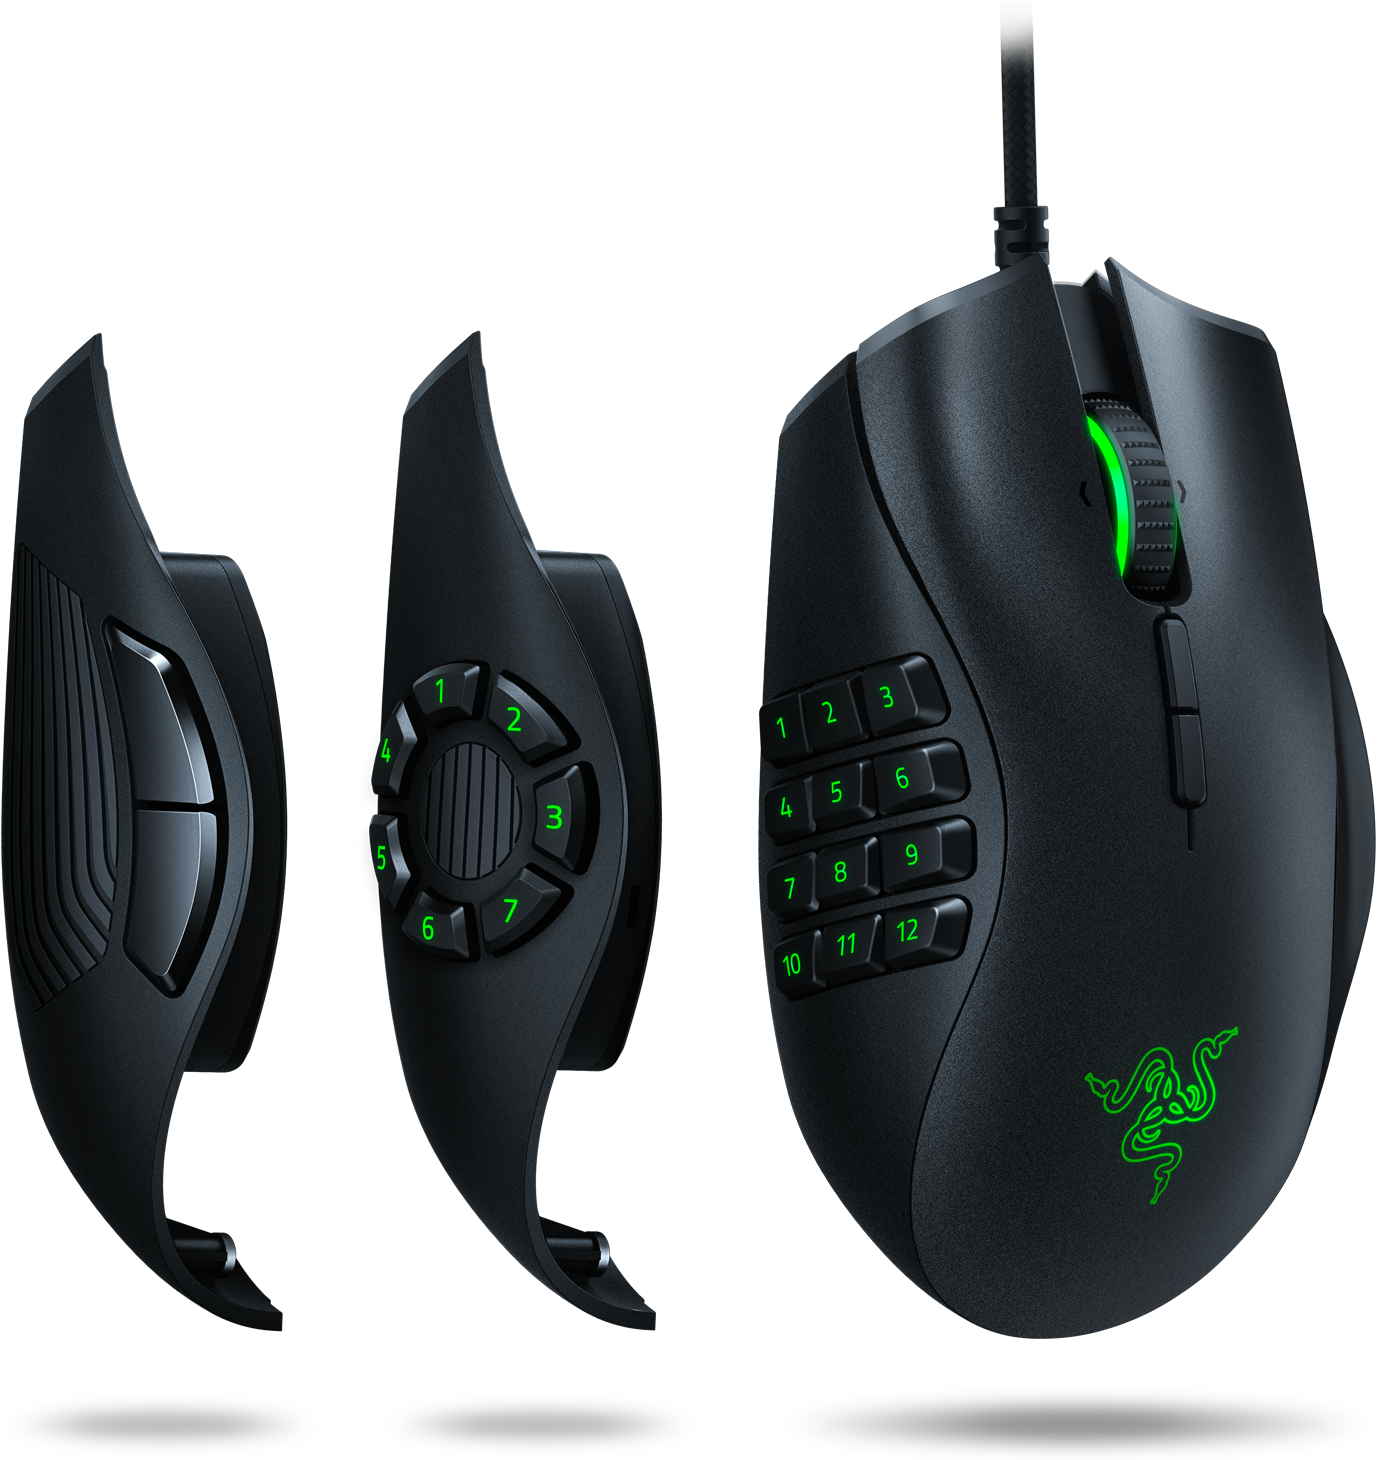 RWlMN3?ver=3363 - Razer Naga Trinity Wired Gaming Mouse